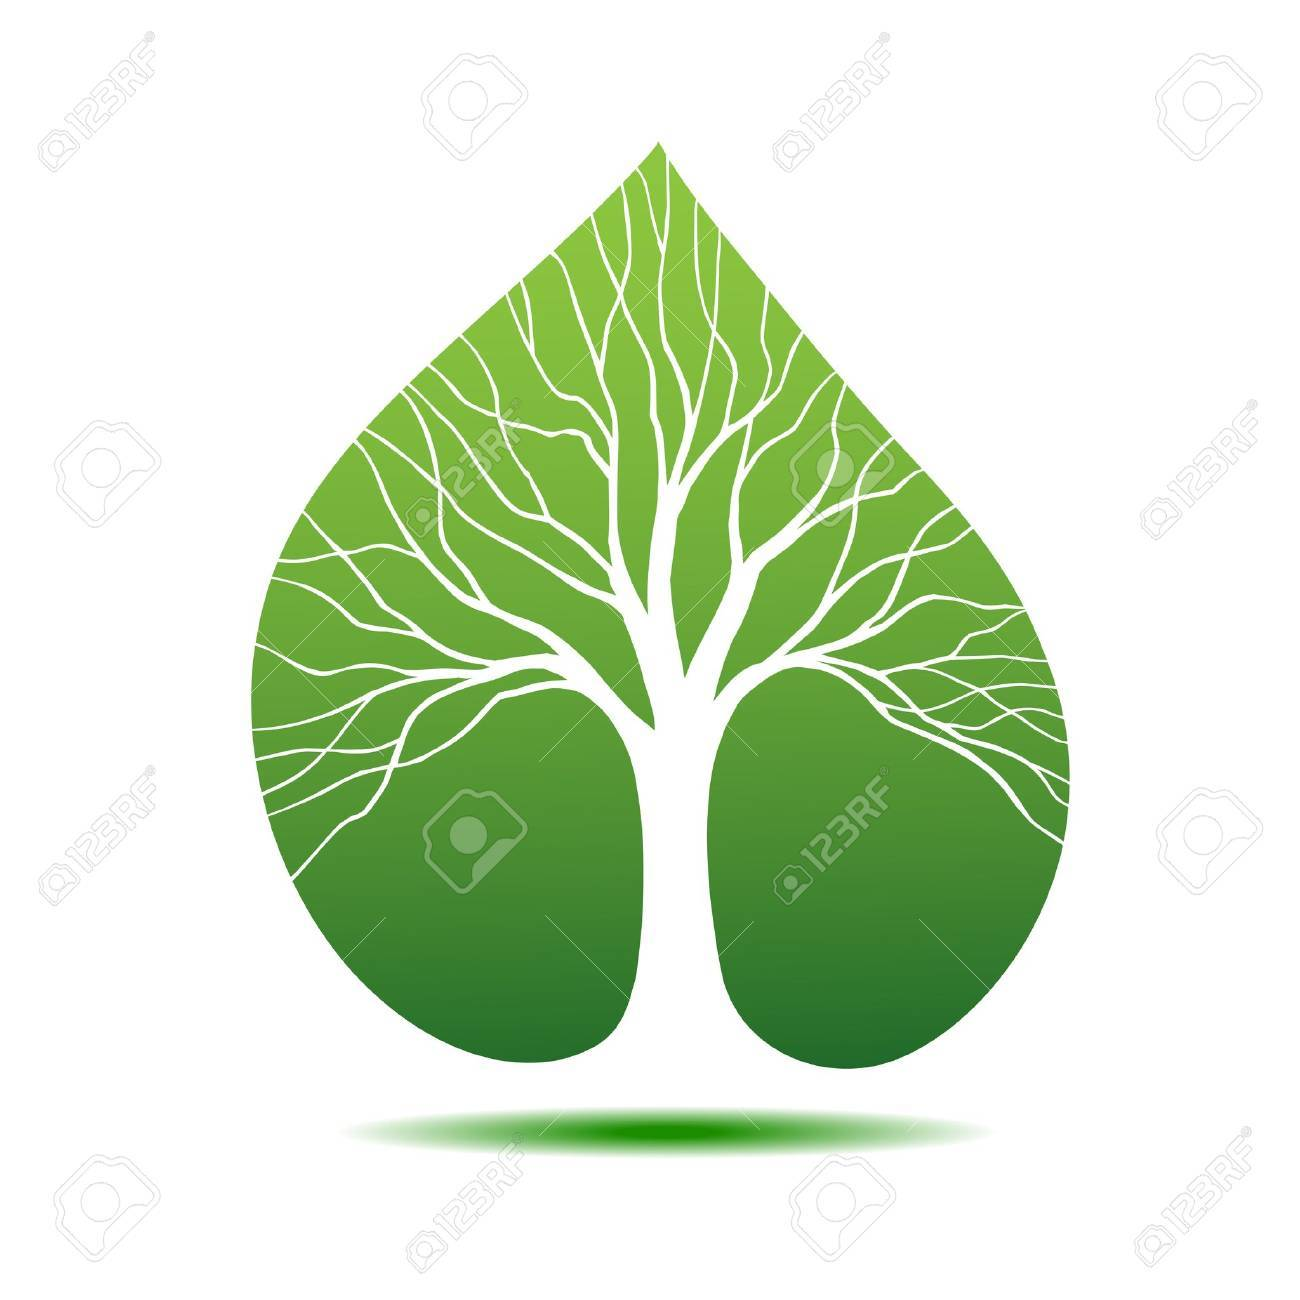 Symbol tree in the form silhouette against leaf Stock Vector - 11272524